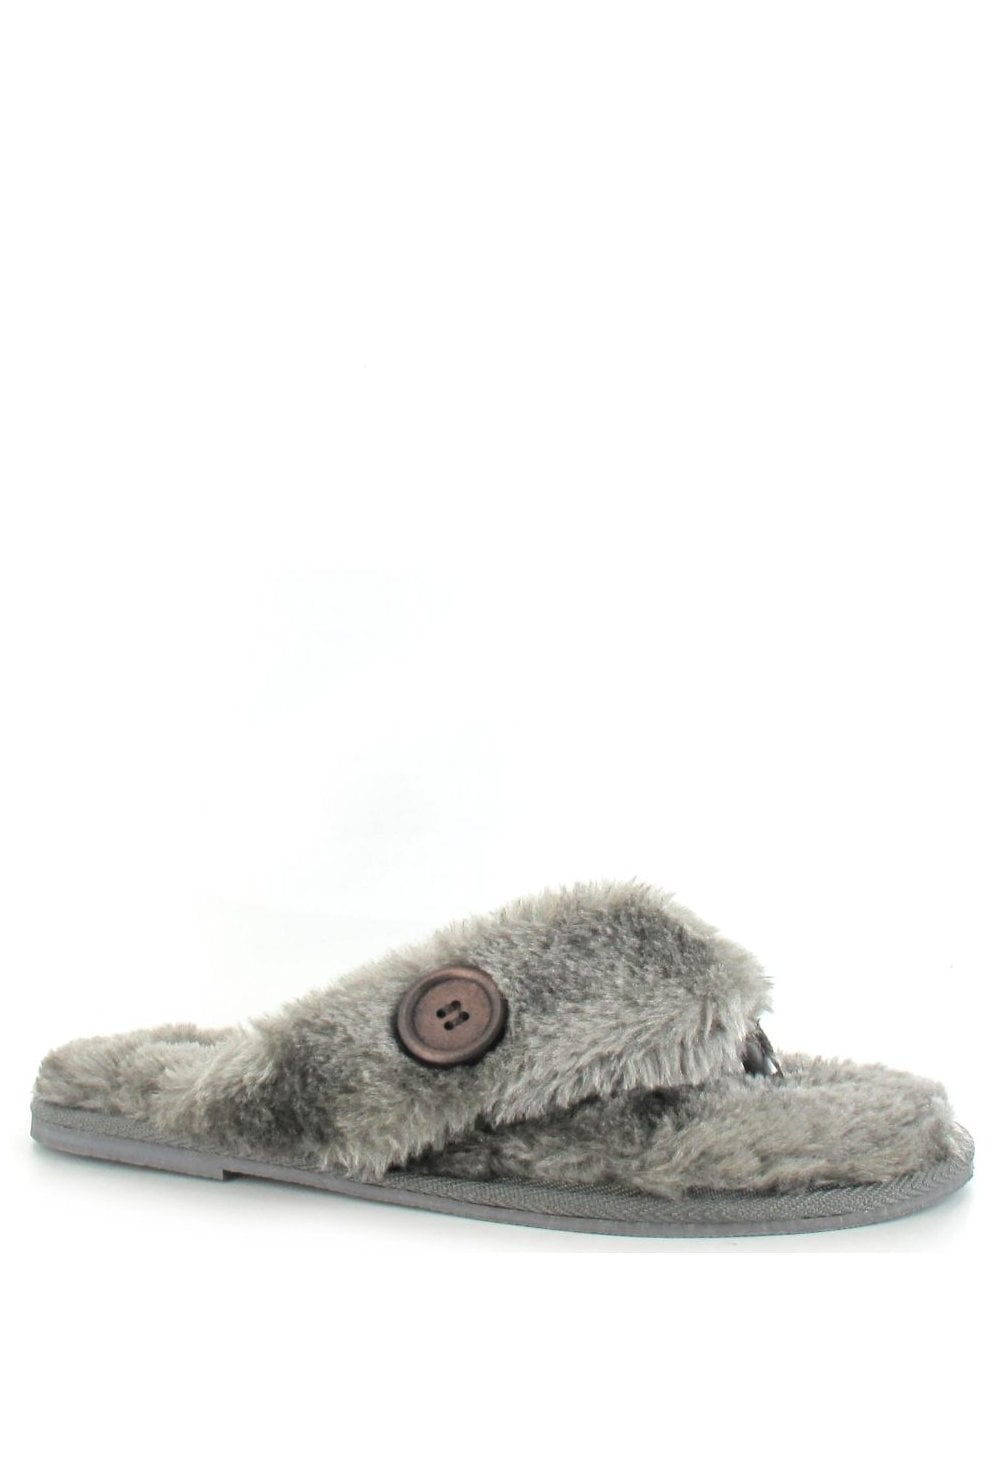 2759e198eade1 ELLA LUXURY SLIPPERS - ELLA from Ruby Room UK